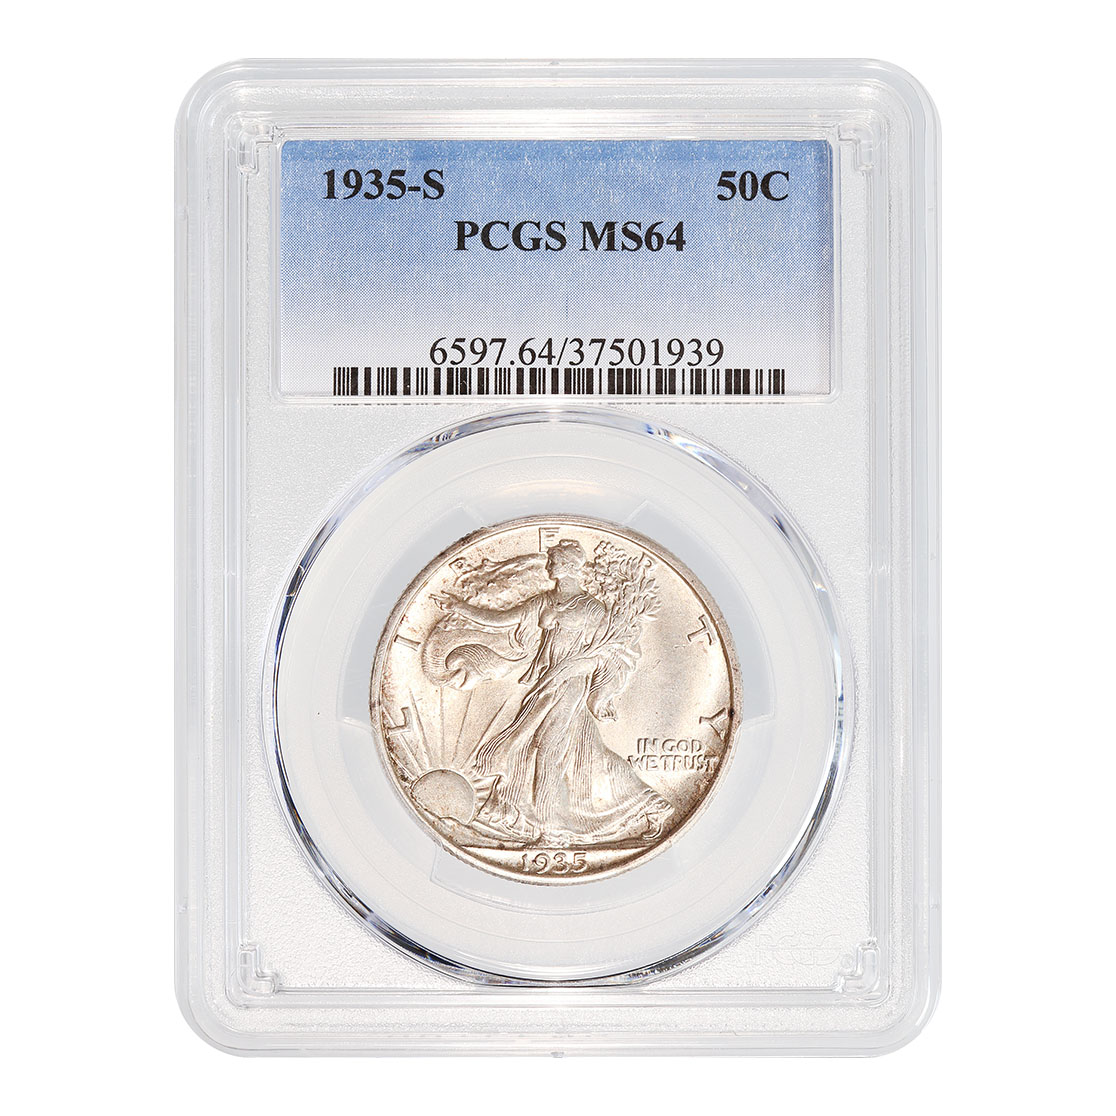 Certified Walking Liberty Half 1935-S MS64 PCGS